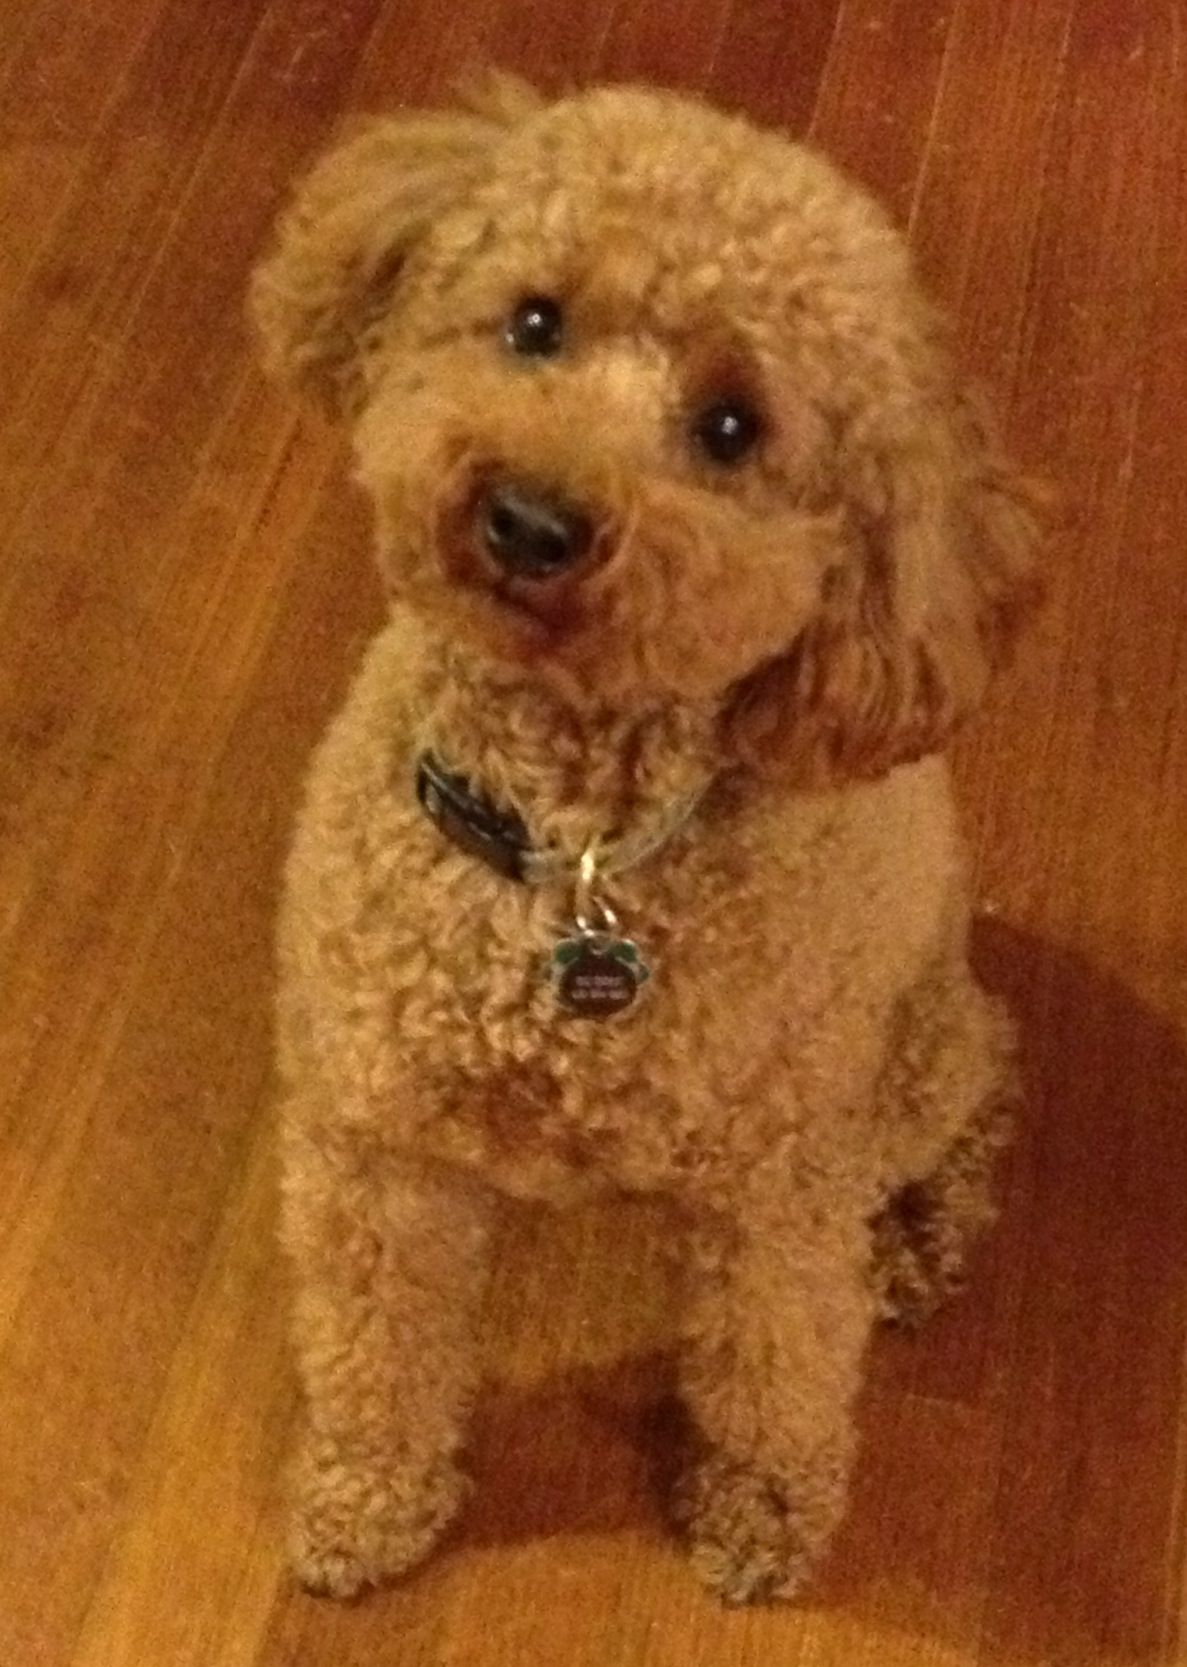 This Is My Dog Buddy He S A Apricot Miniature Poodle 3 Years